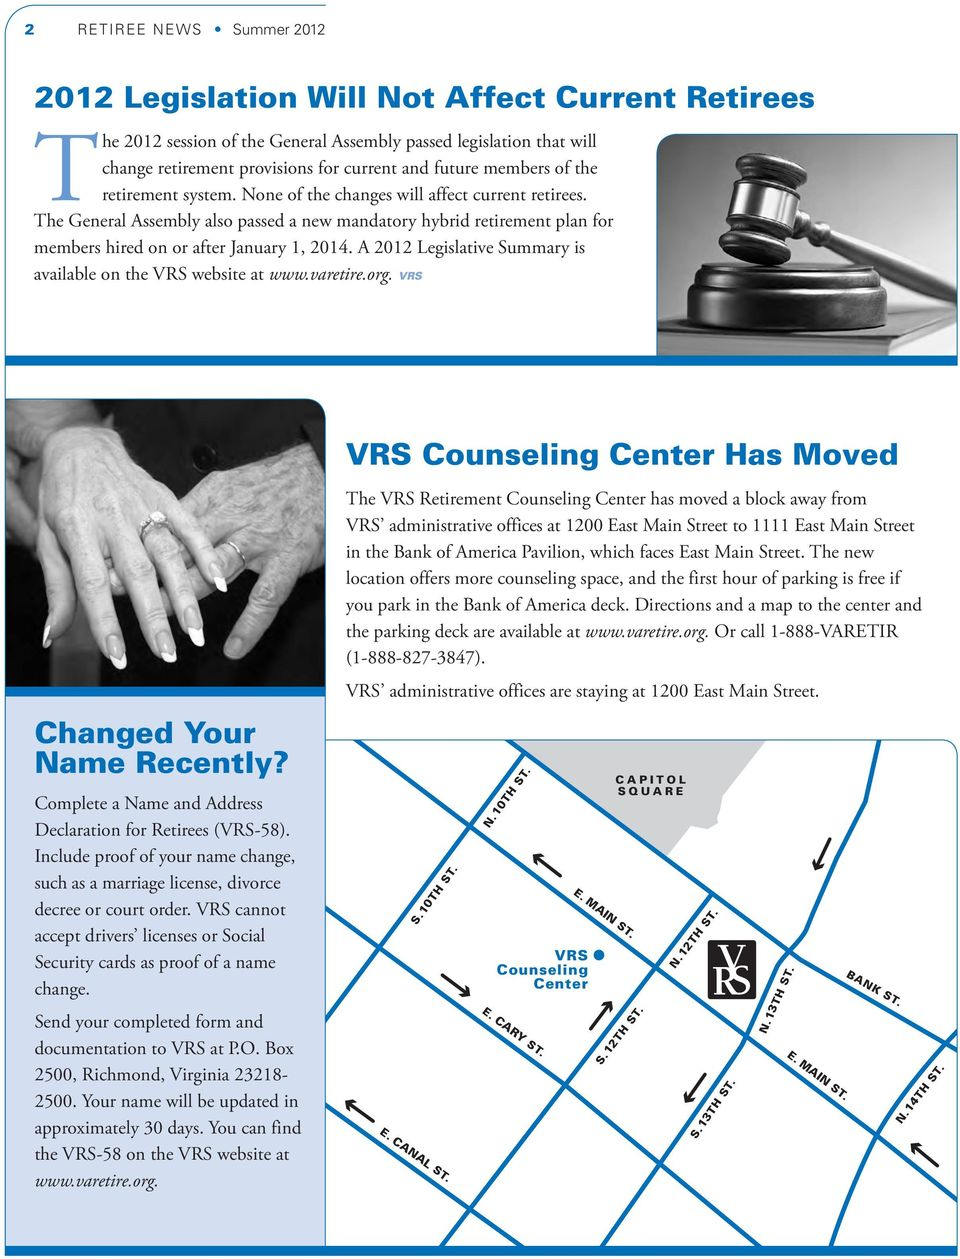 The General Assembly also passed a new mandatory hybrid retirement plan for members hired on or after January 1, 2014. A 2012 Legislative Summary is available on the VRS website at www.varetire.org.